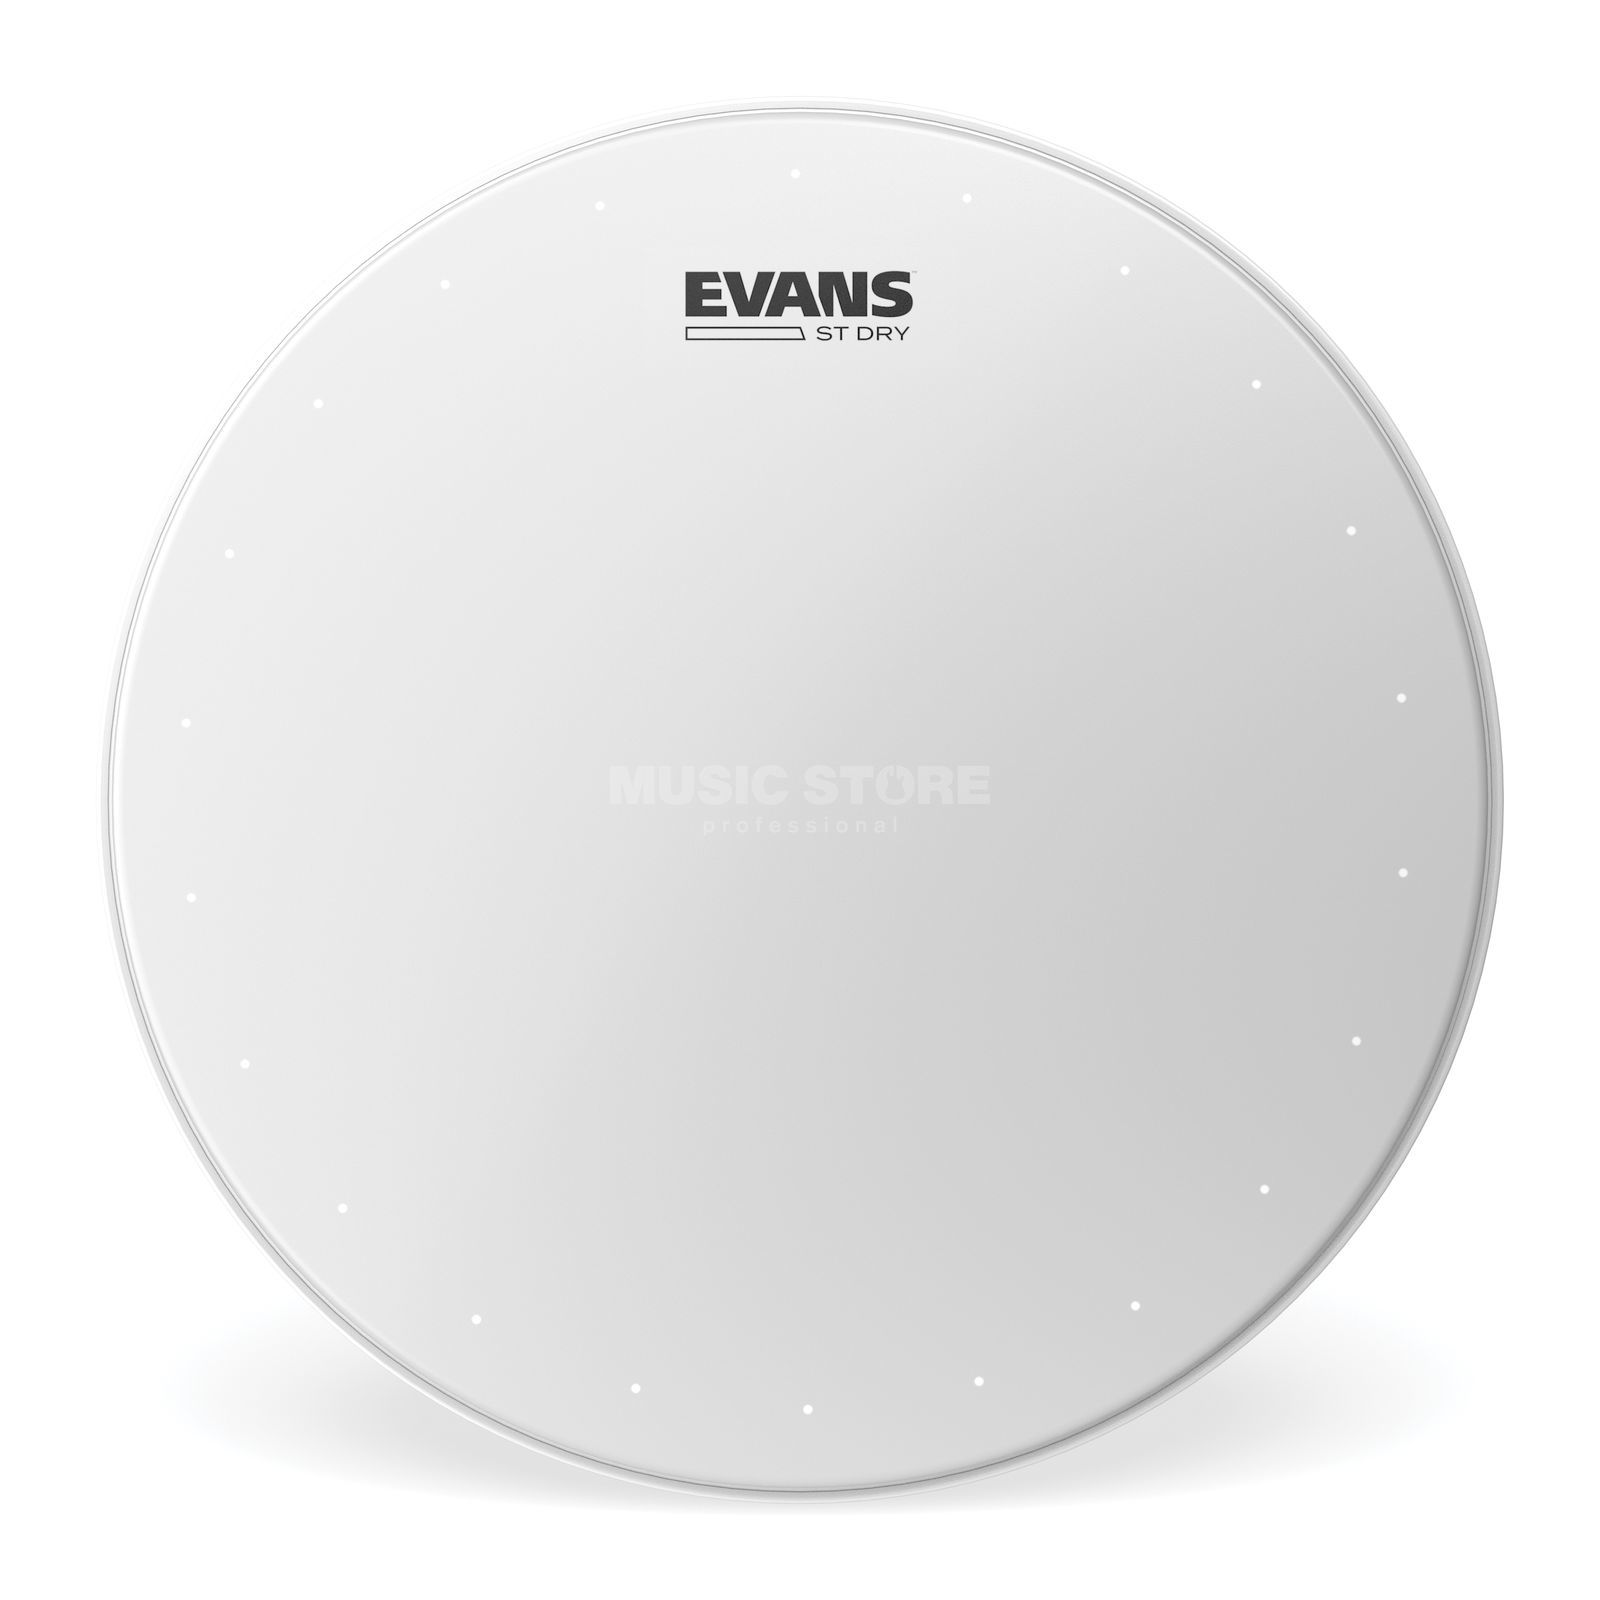 "Evans Super Tough DRY, B14STD, 14"", Snare Batter Produktbild"